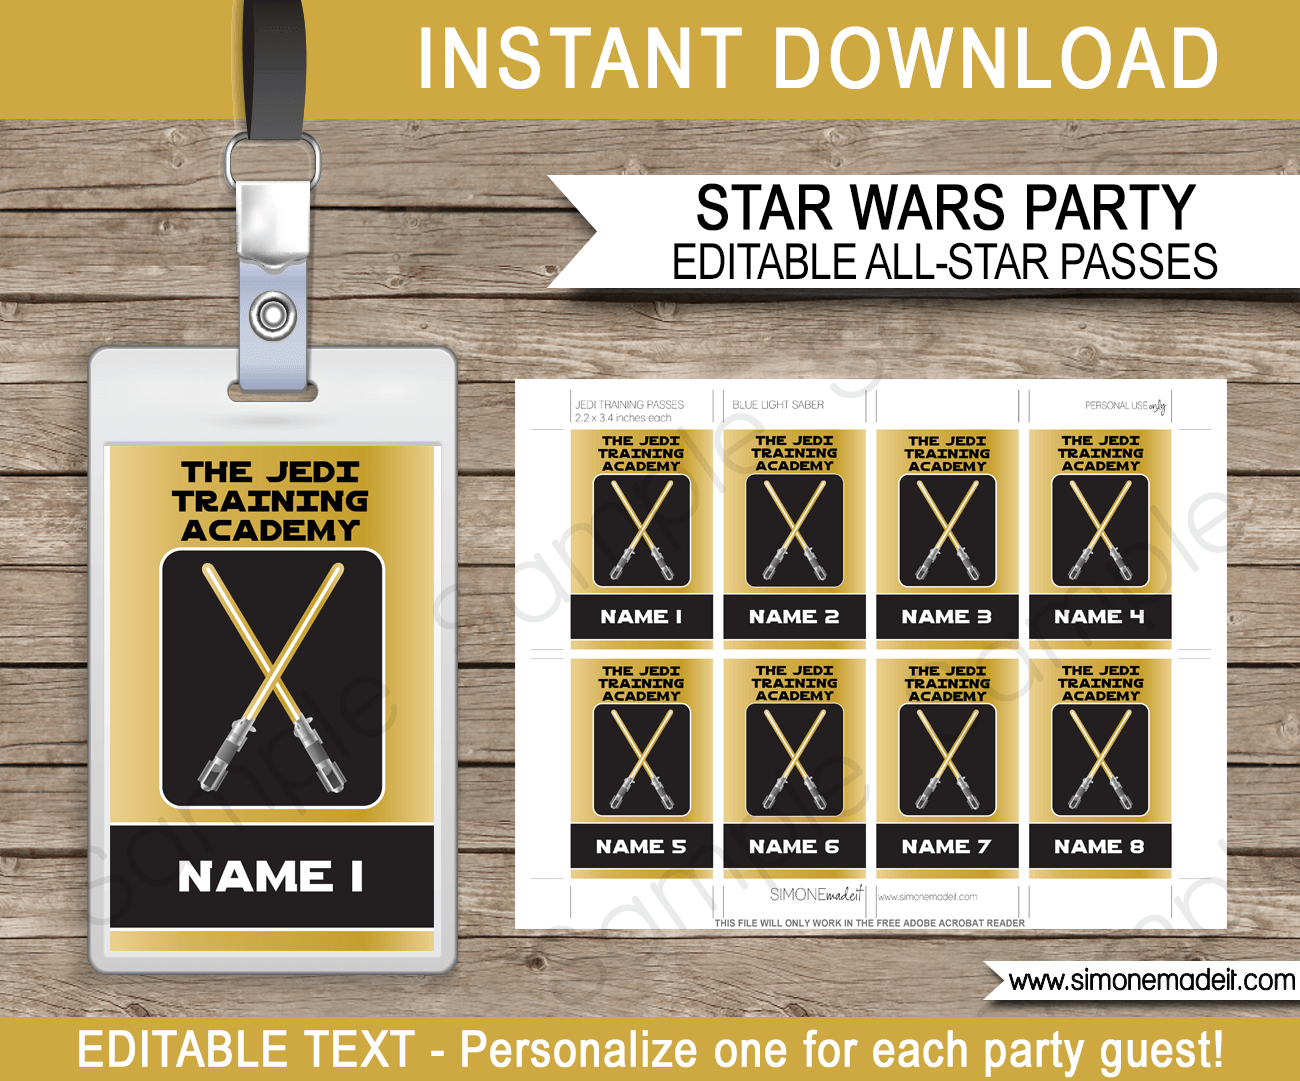 Gold Star Wars Jedi Training  Passes | Printable Inserts | Party Favors | Birthday Party | Editable DIY Template | $3.50 INSTANT DOWNLOAD via SIMONEmadeit.com